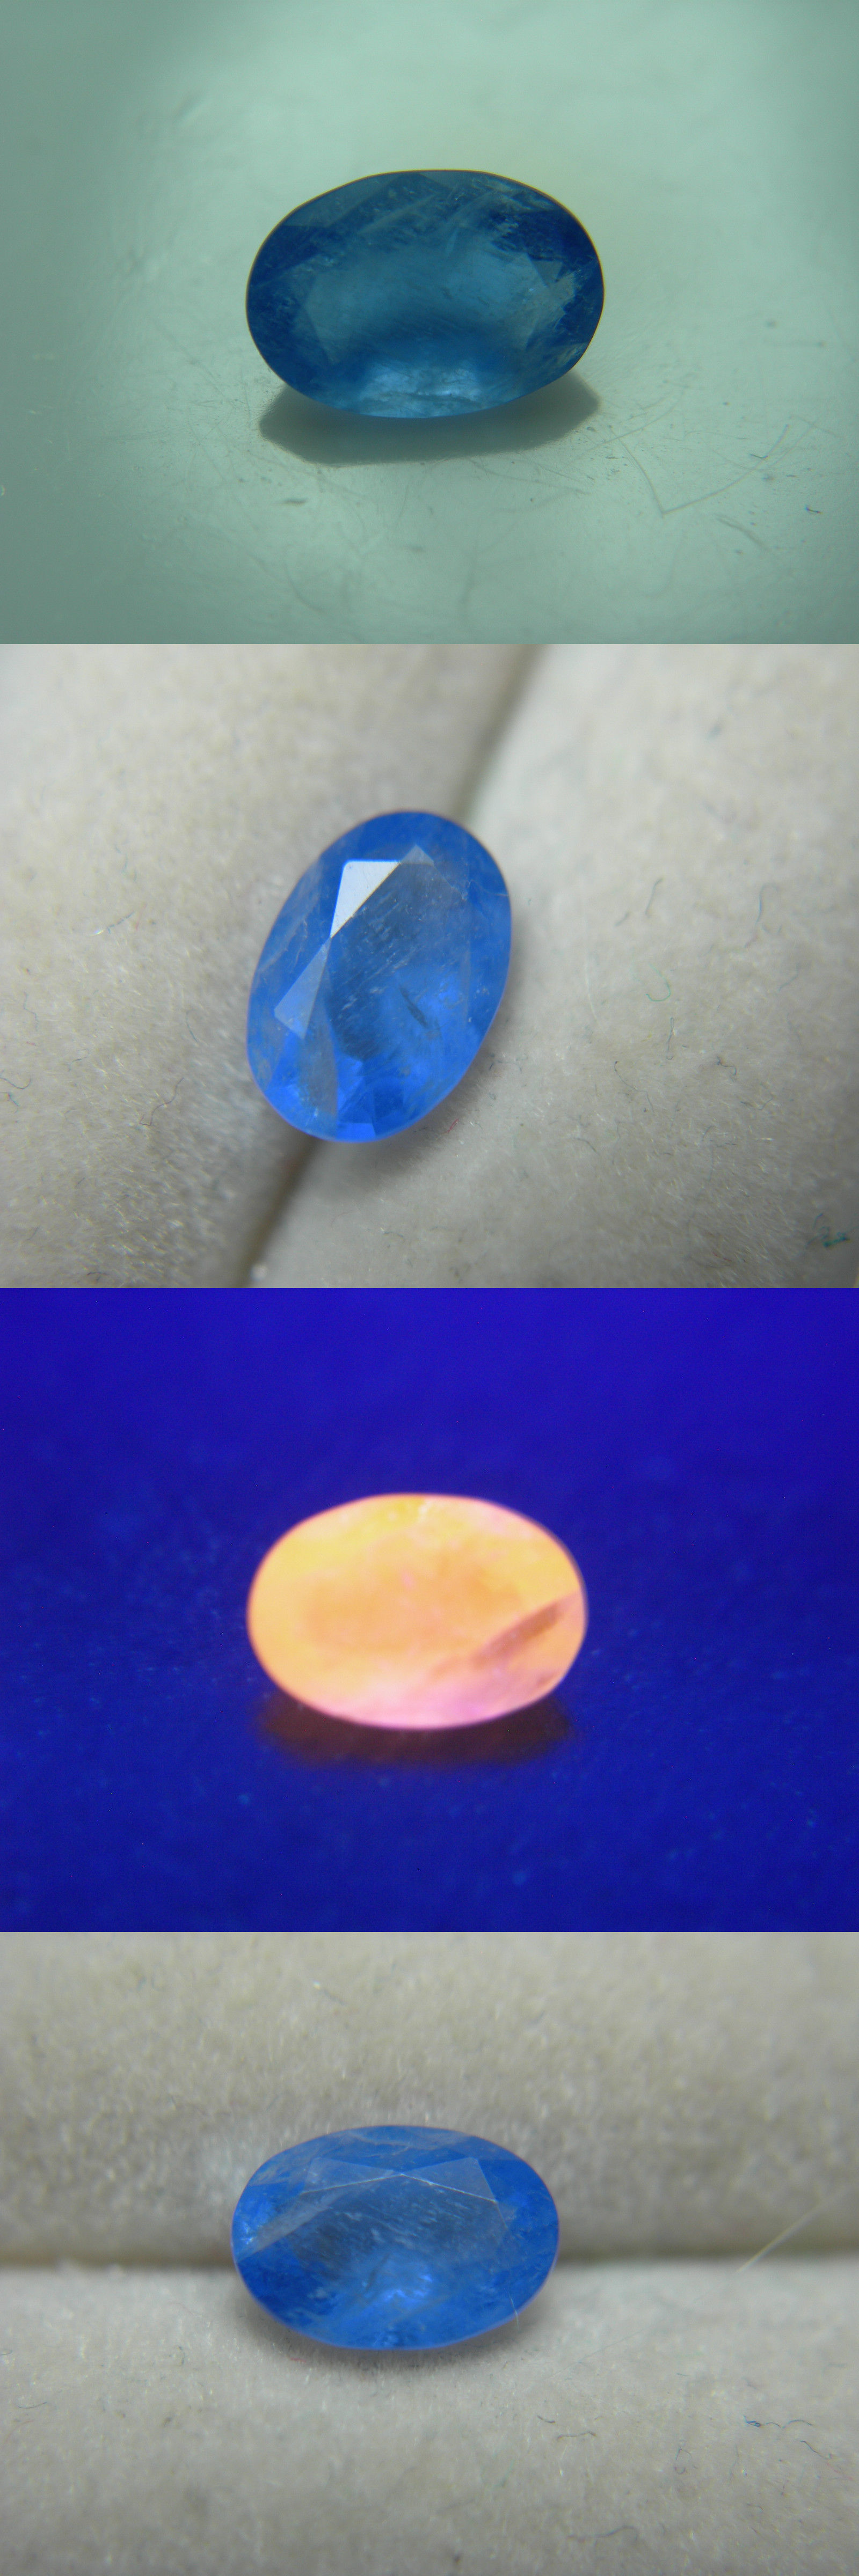 Sodalite 69179: Extremely Rare Gem Blue Sodalite Gemstone Strong Orange Fluorescent Gemmy 0.51Ct BUY IT NOW ONLY: $450.0